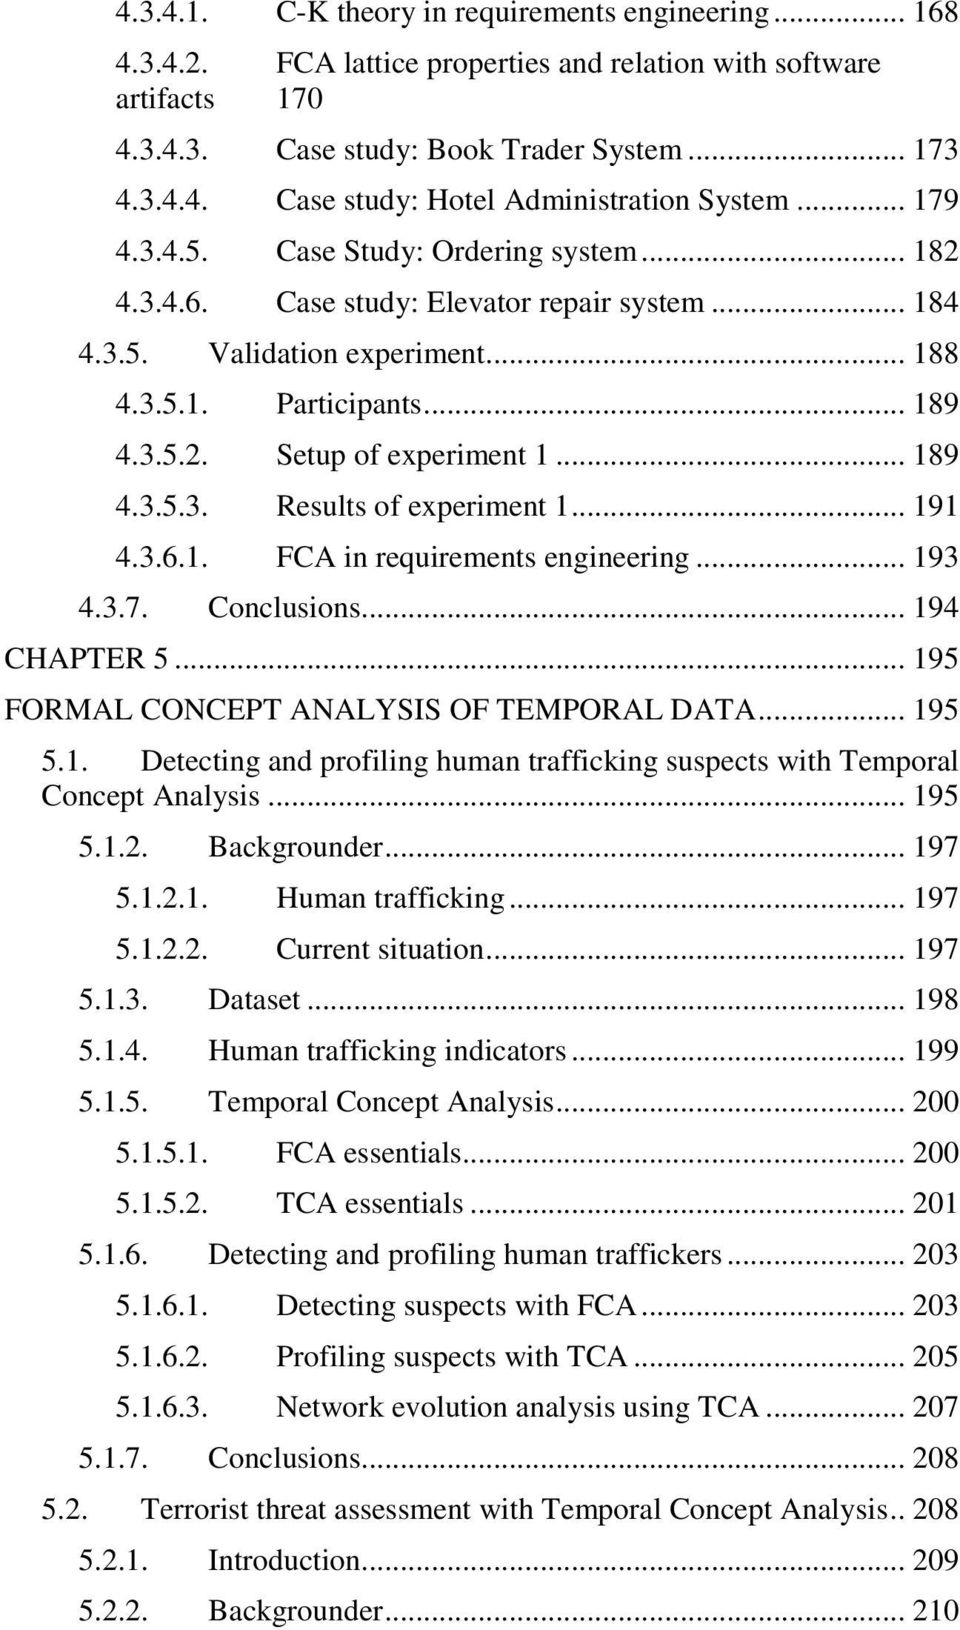 .. 189 4.3.5.3. Results of experiment 1... 191 4.3.6.1. FCA in requirements engineering... 193 4.3.7. Conclusions... 194 CHAPTER 5... 195 FORMAL CONCEPT ANALYSIS OF TEMPORAL DATA... 195 5.1. Detecting and profiling human trafficking suspects with Temporal Concept Analysis.